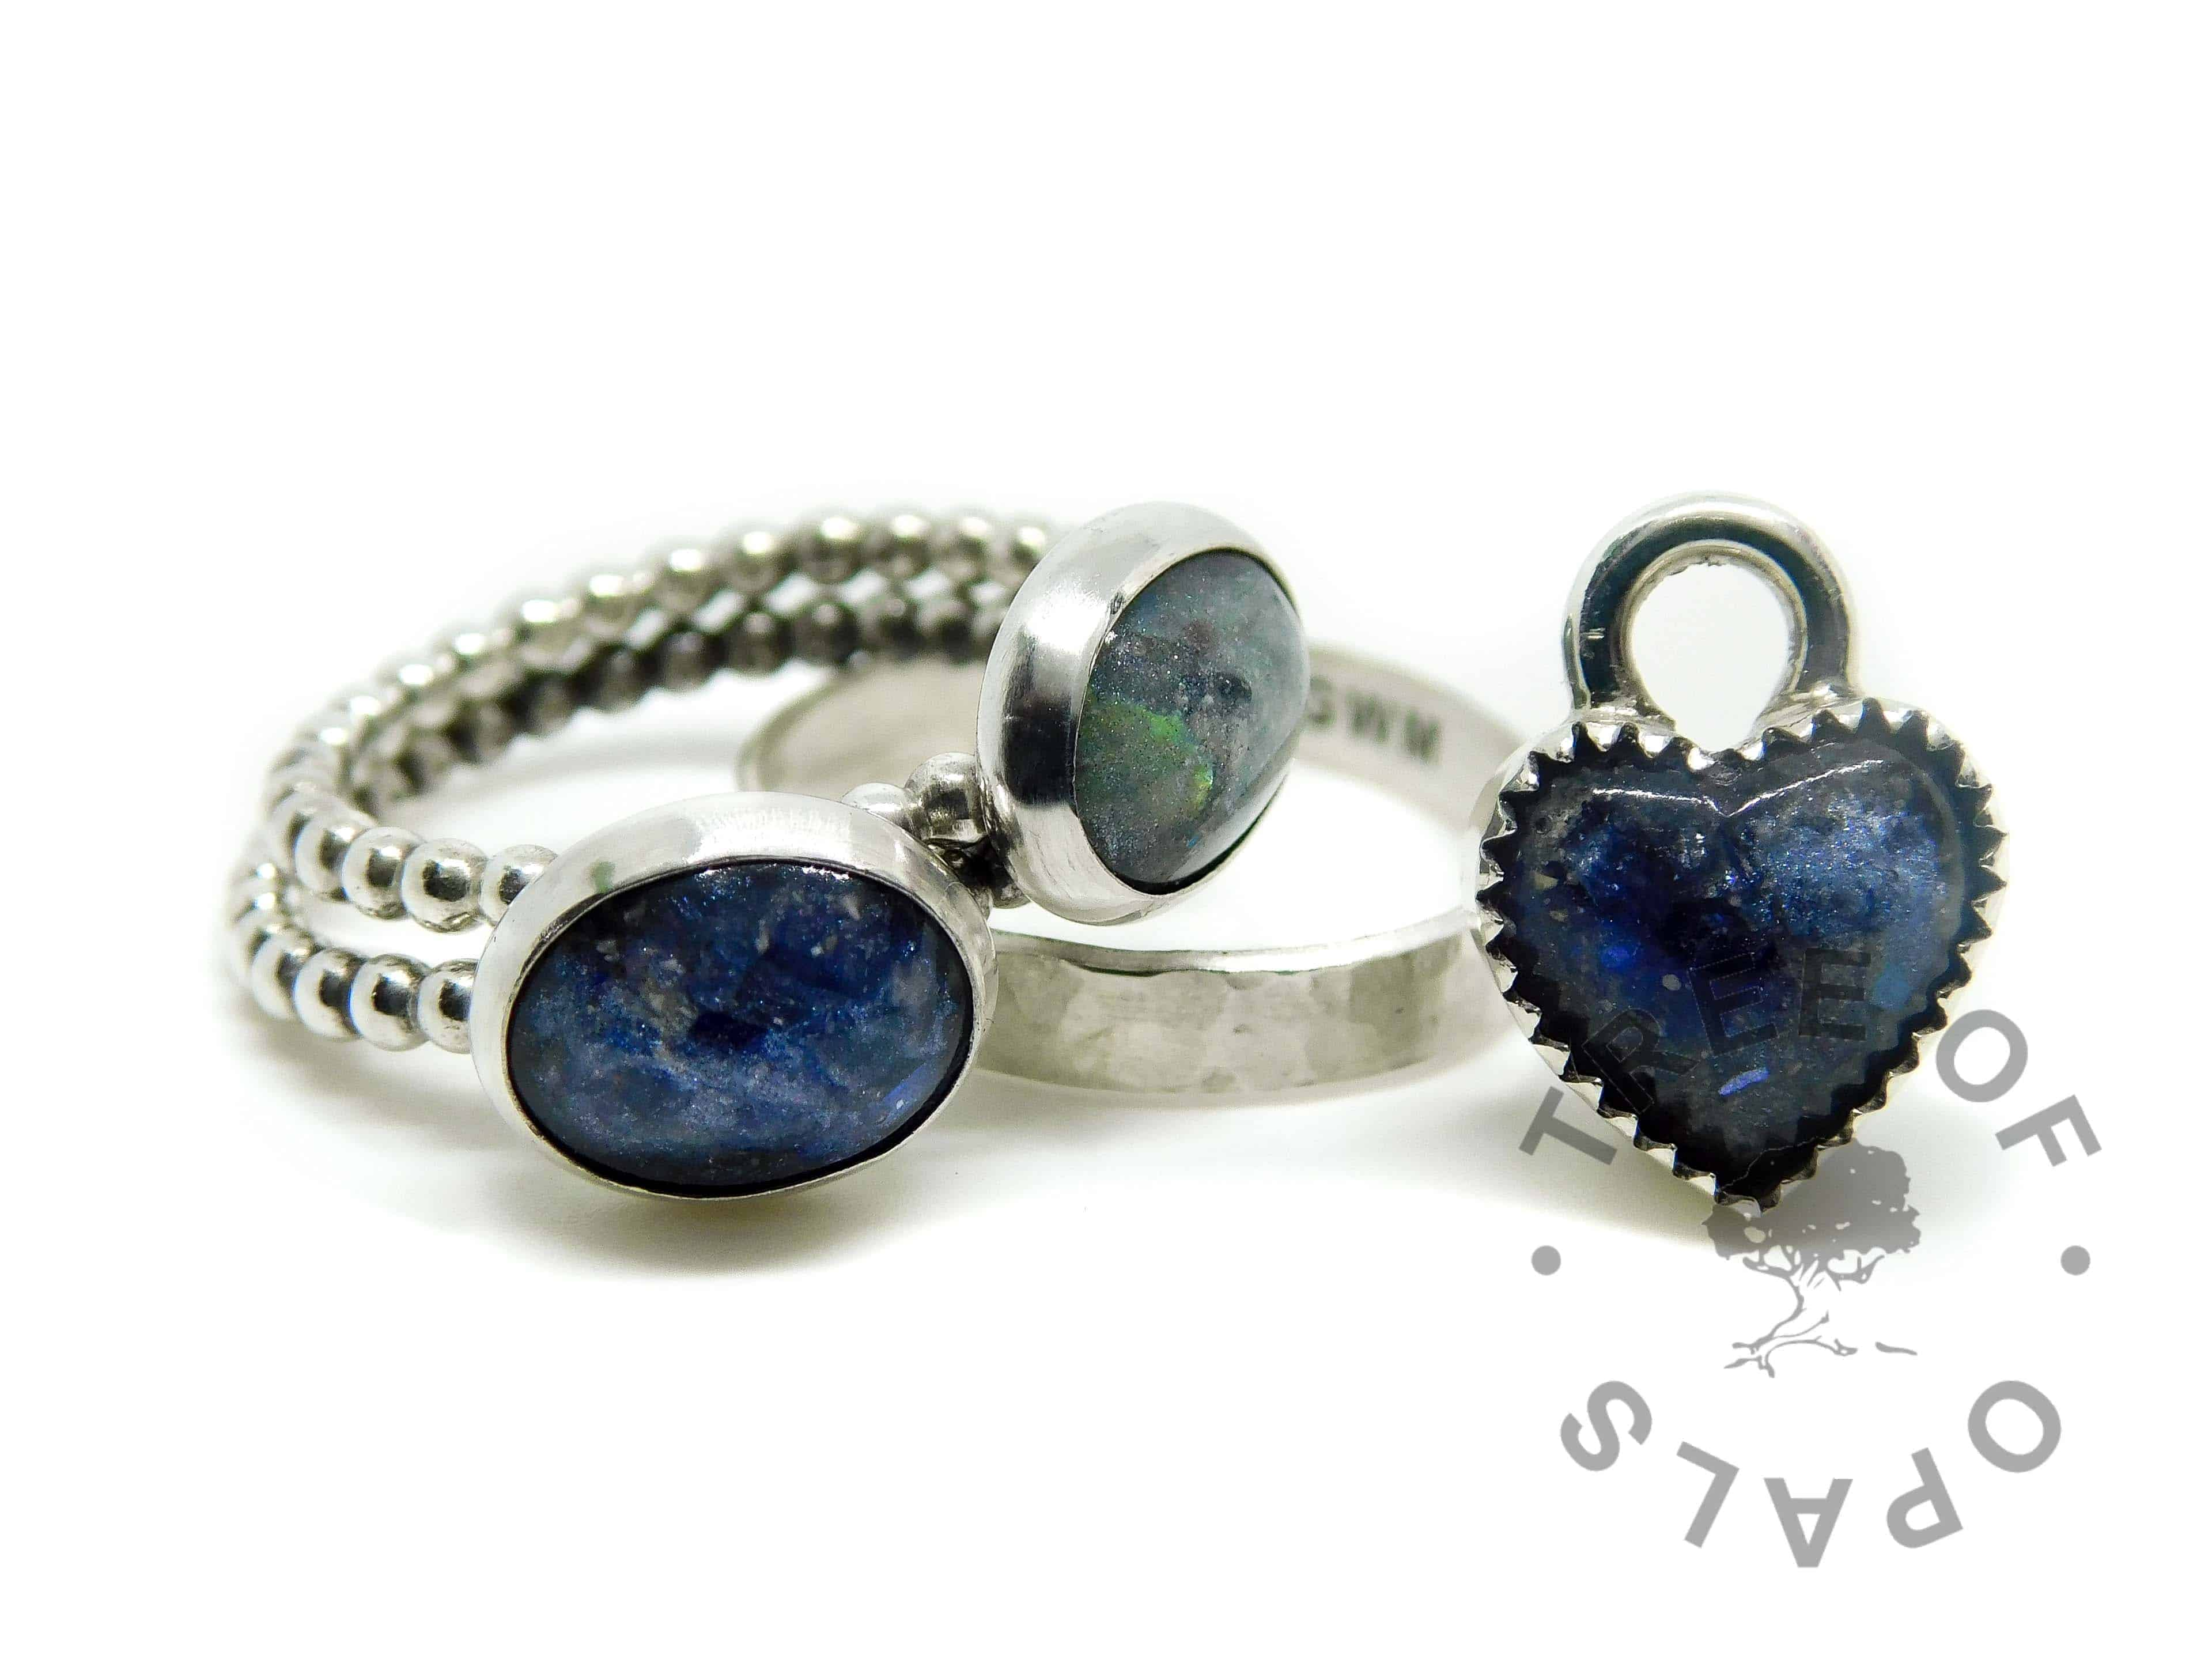 bubble wire ash rings with Aegean blue and mermaid teal sparkle mix, engraved textured ring and heart ash charm